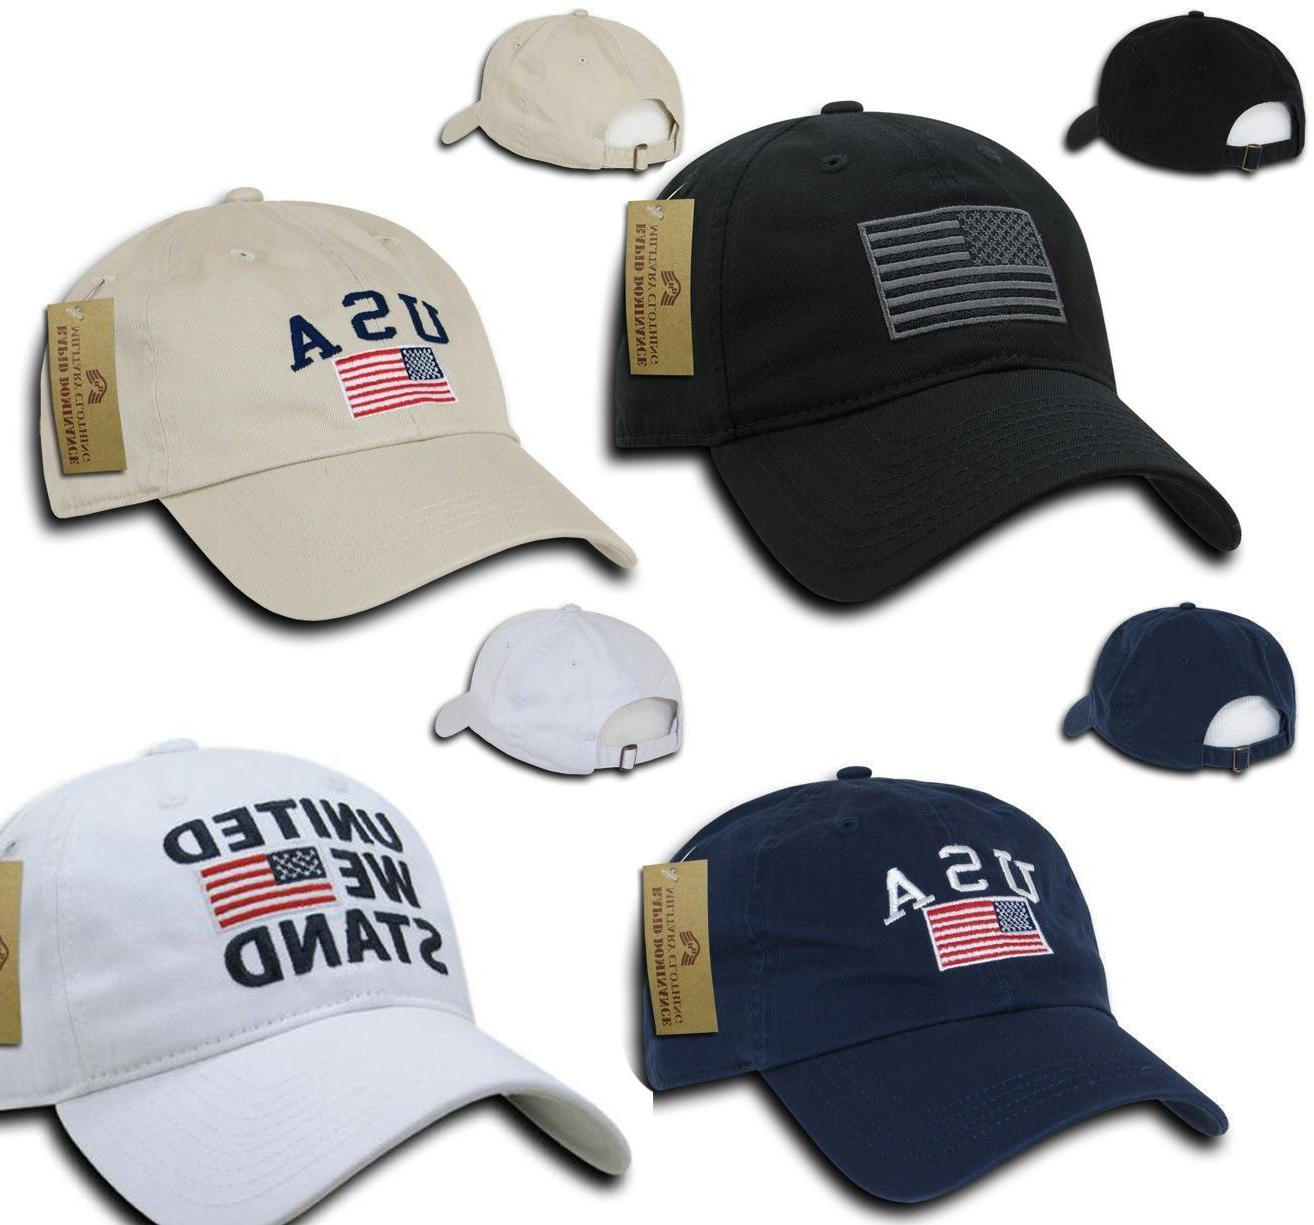 US USA American Flag Patch Baseball Cap Dad Hat Hats Washed